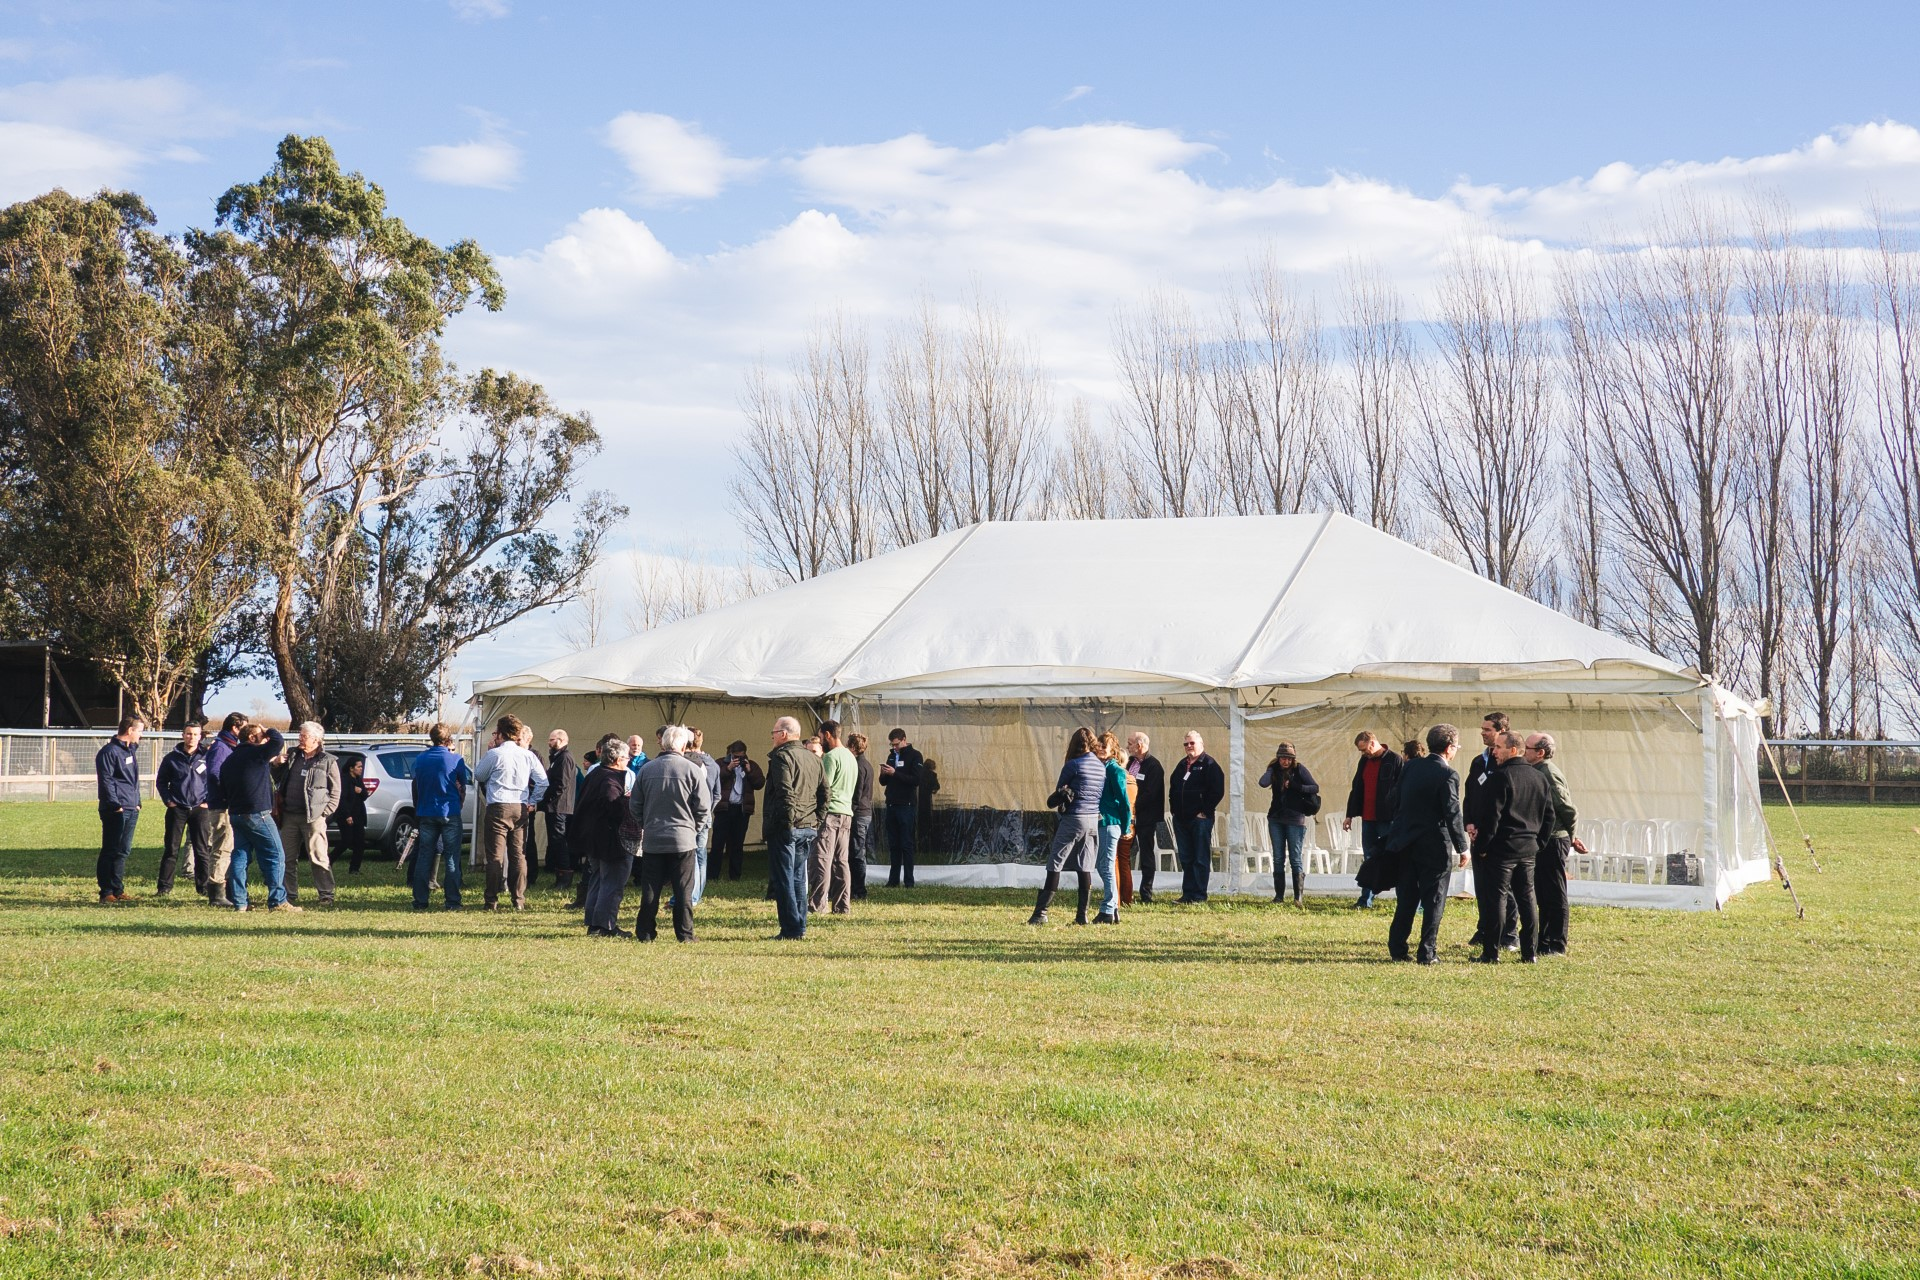 Attendees arrive at the enclosure.